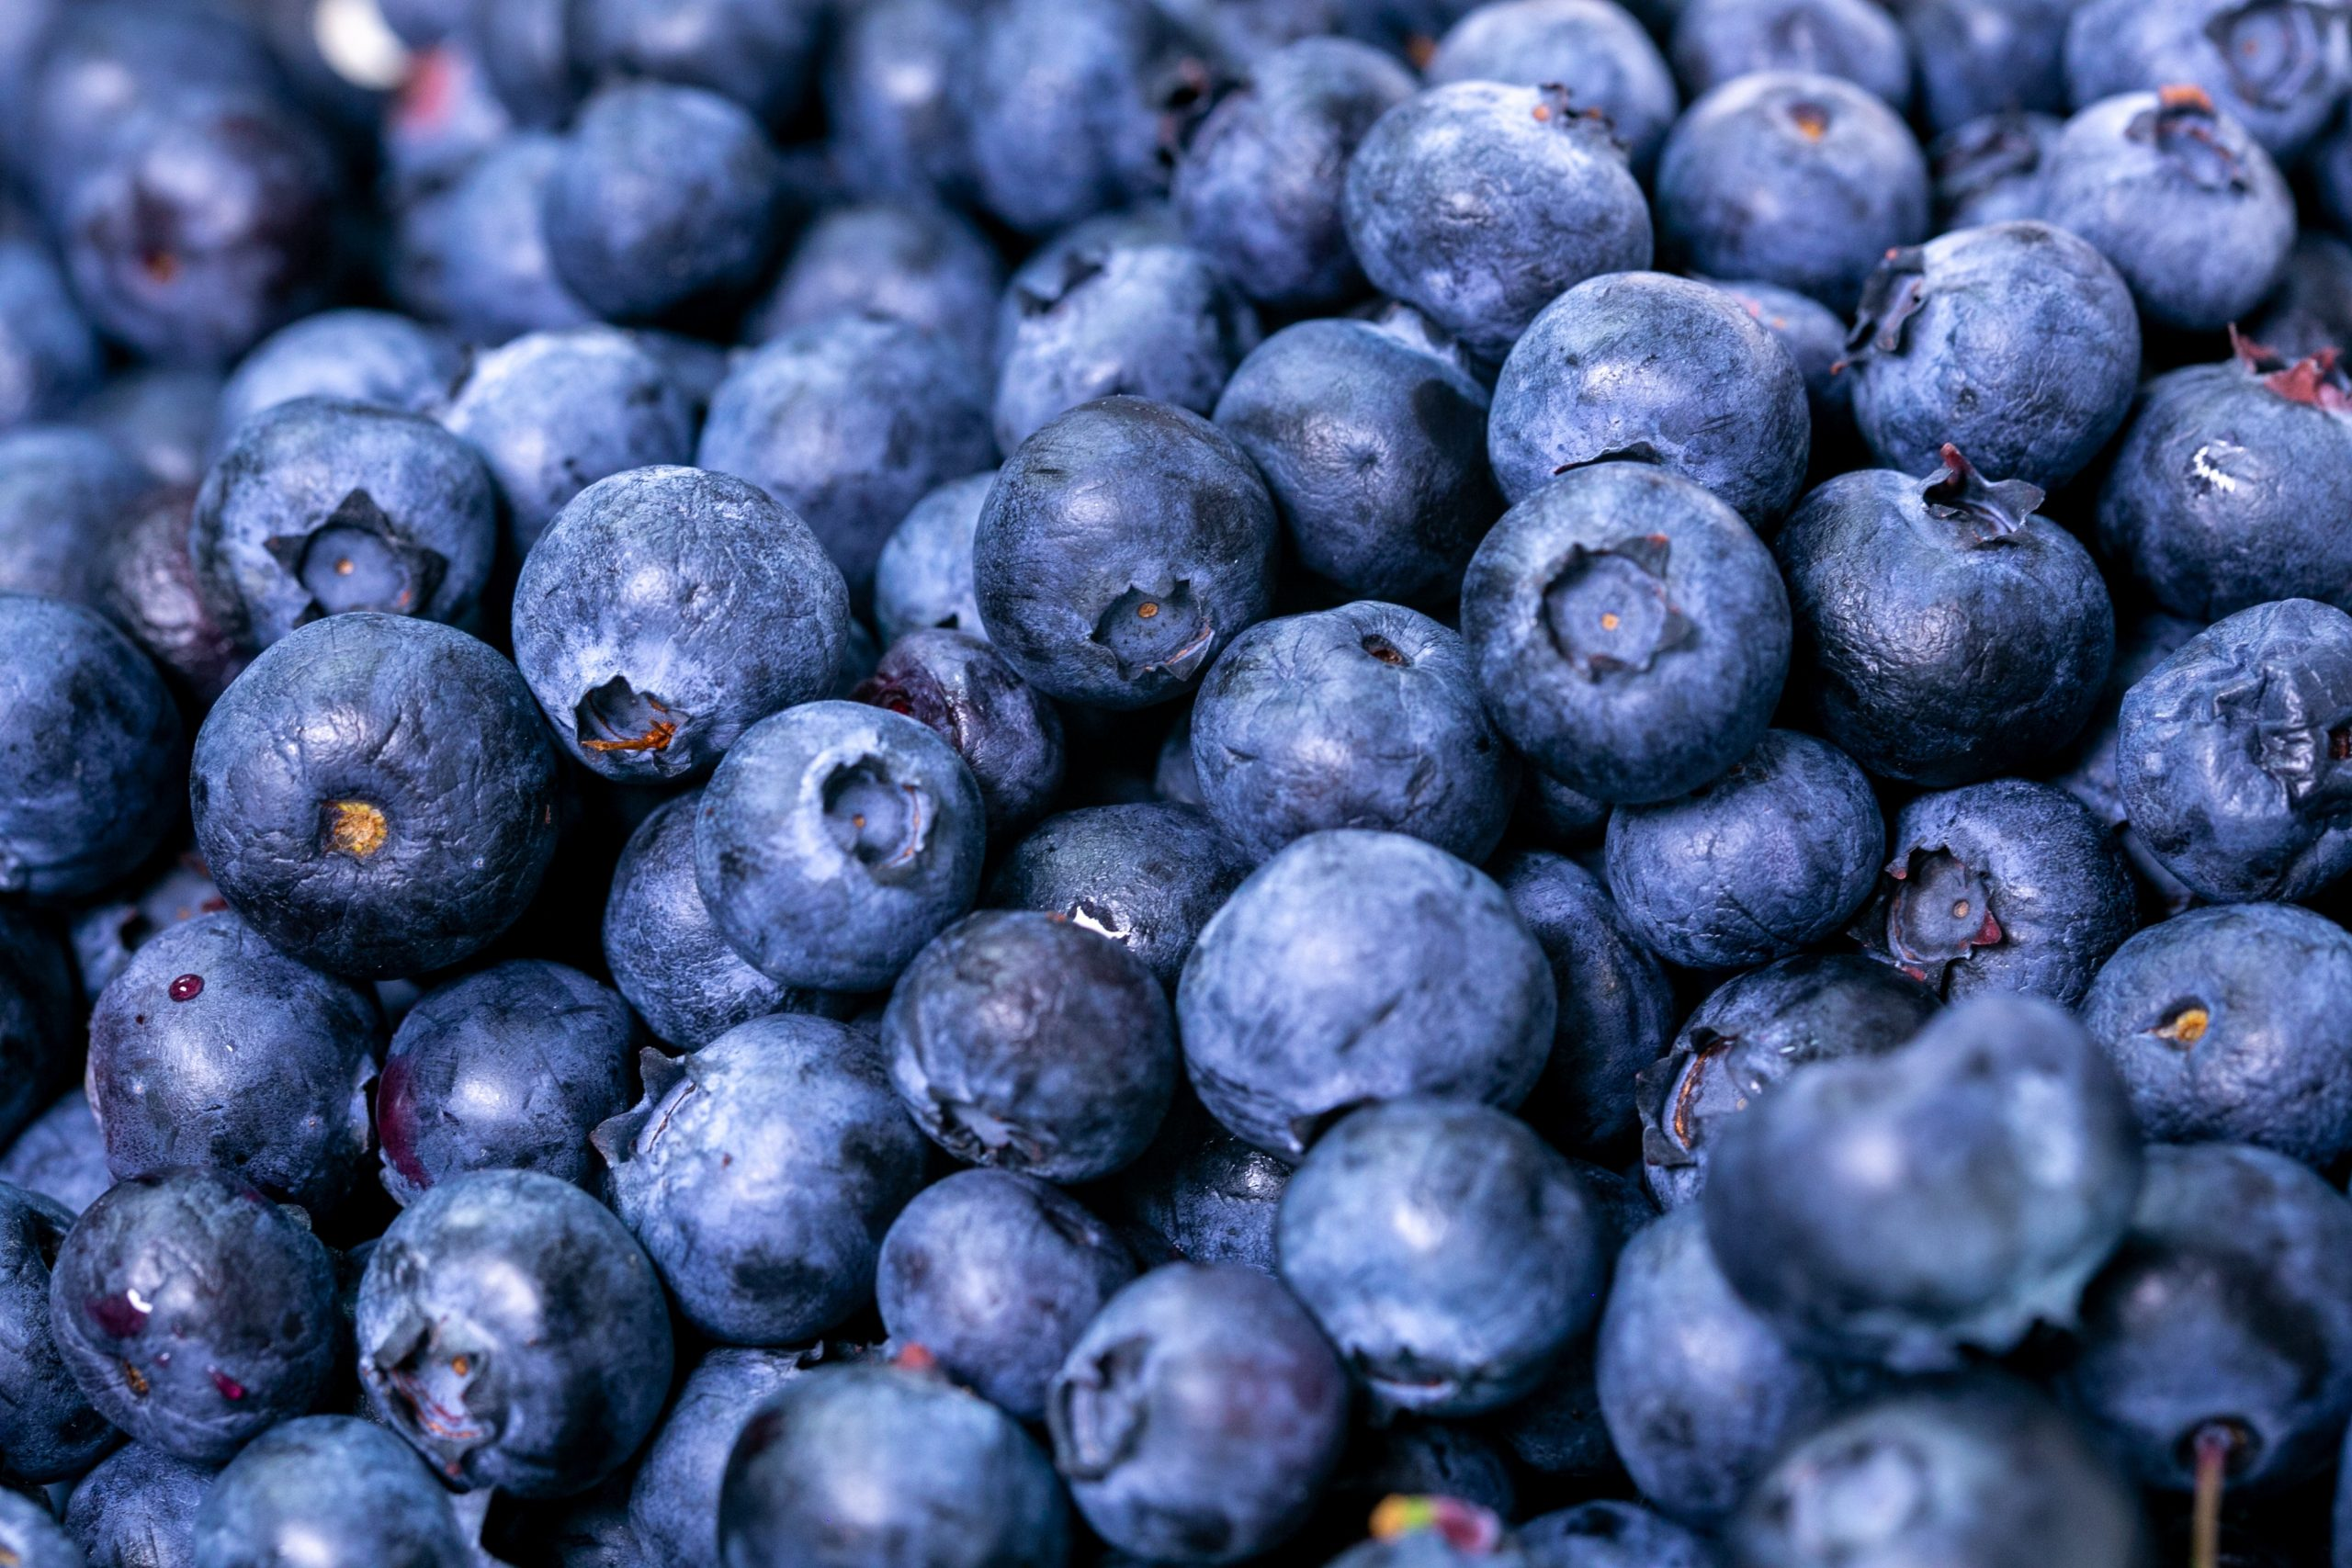 a pile of blueberries